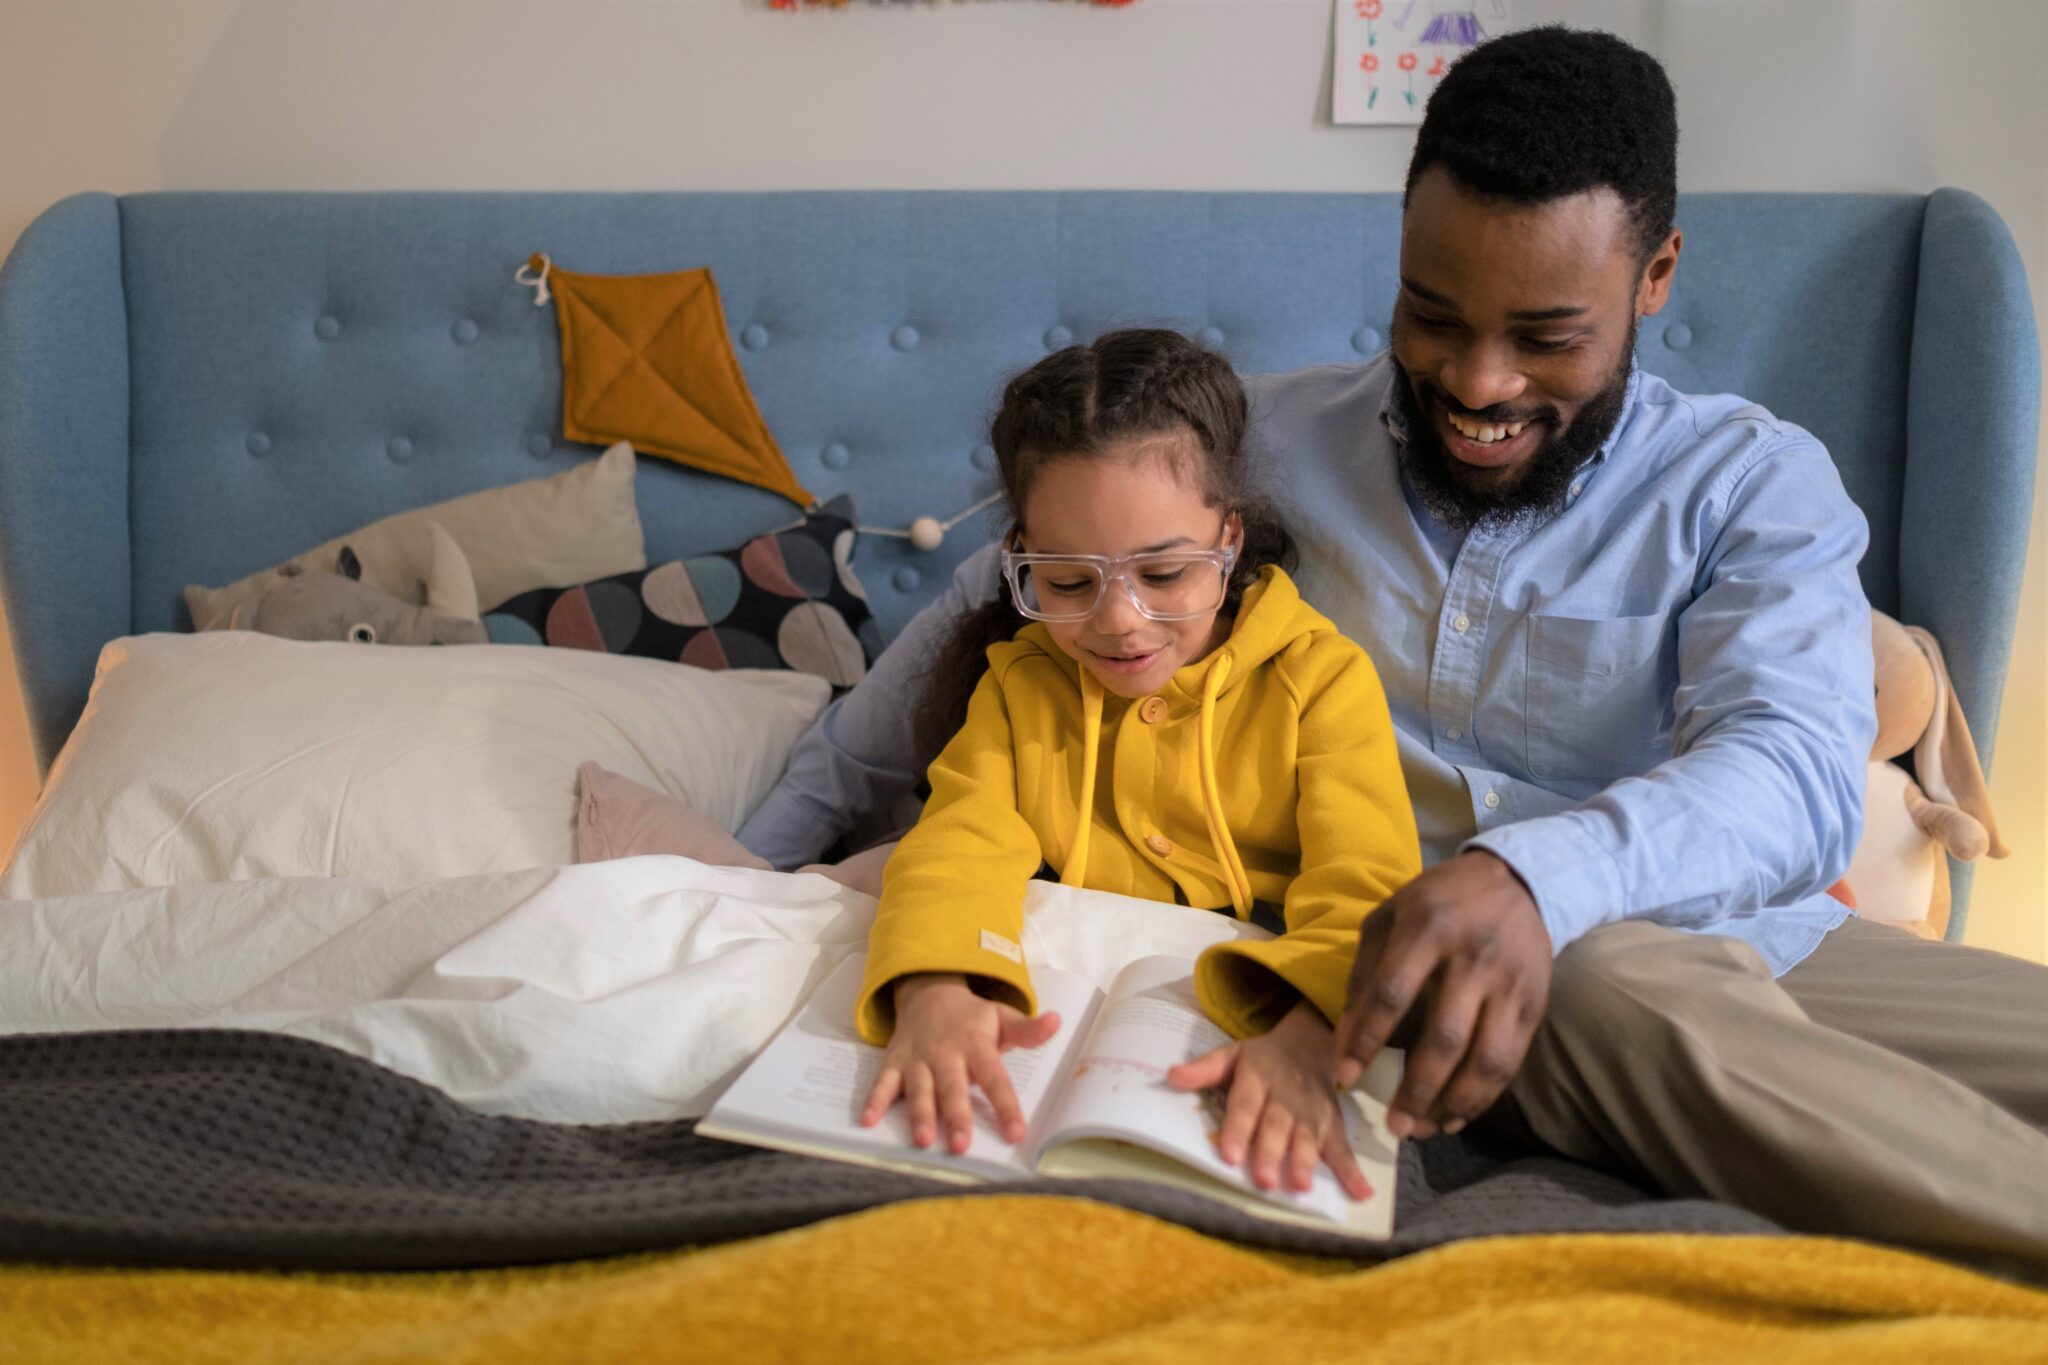 The positive impact a father has by reading to their child